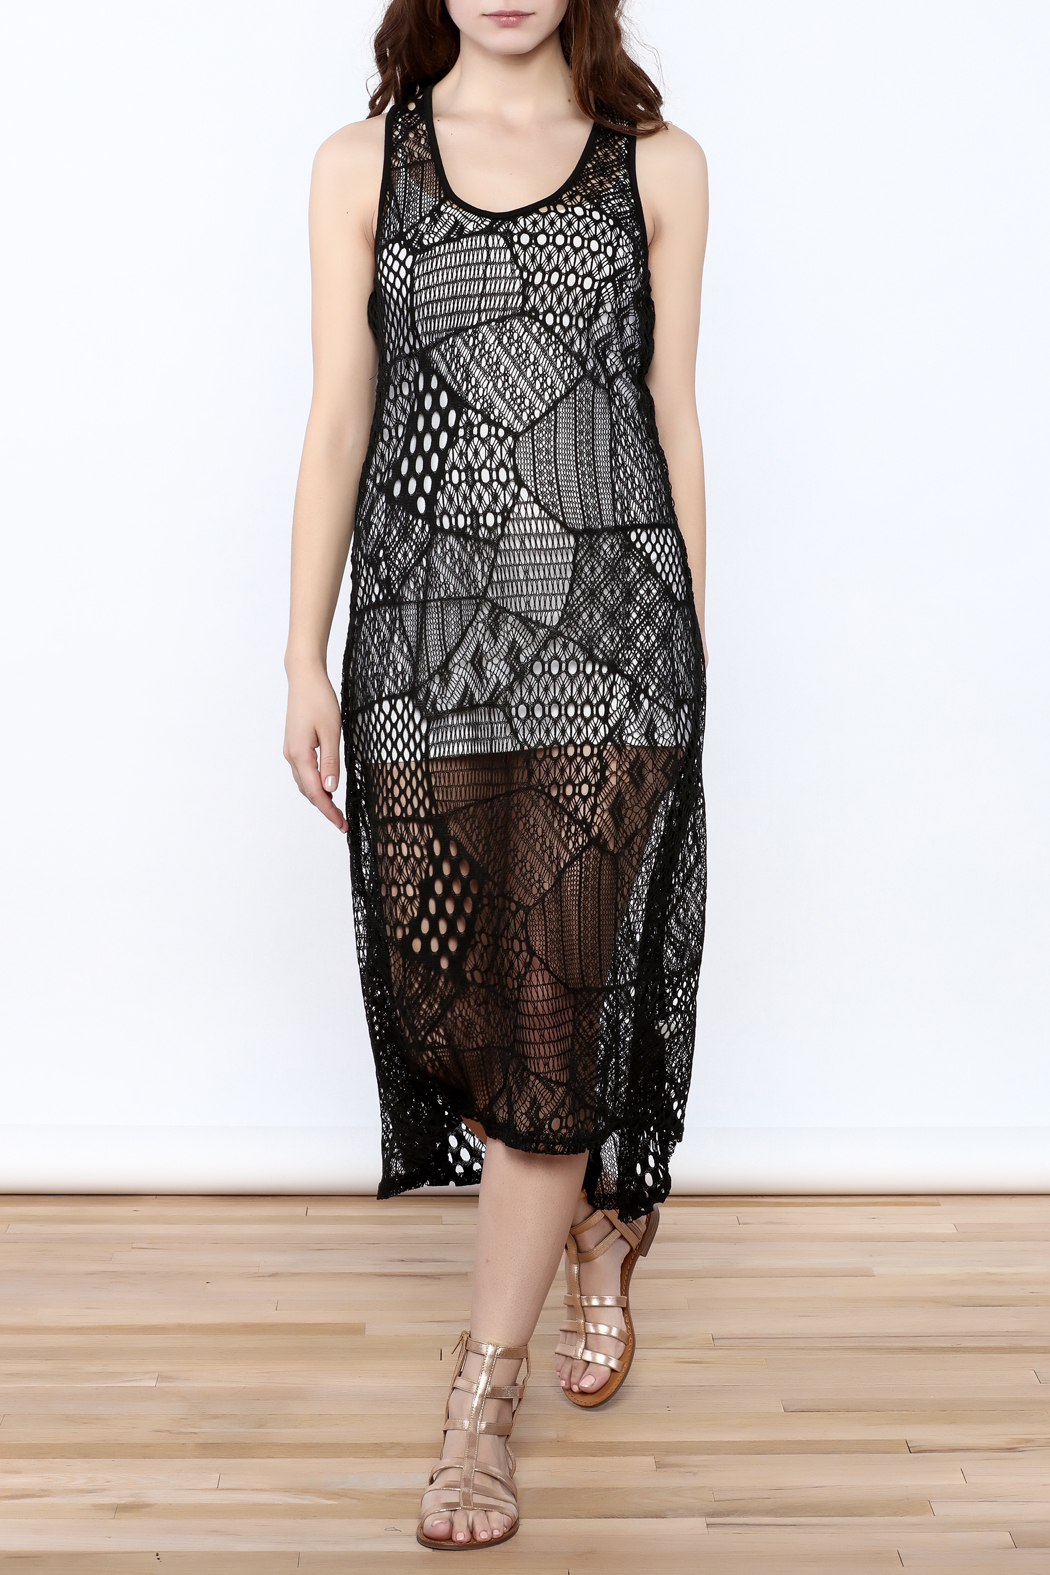 Blue Island Netted Sleeveless Dress - Main Image